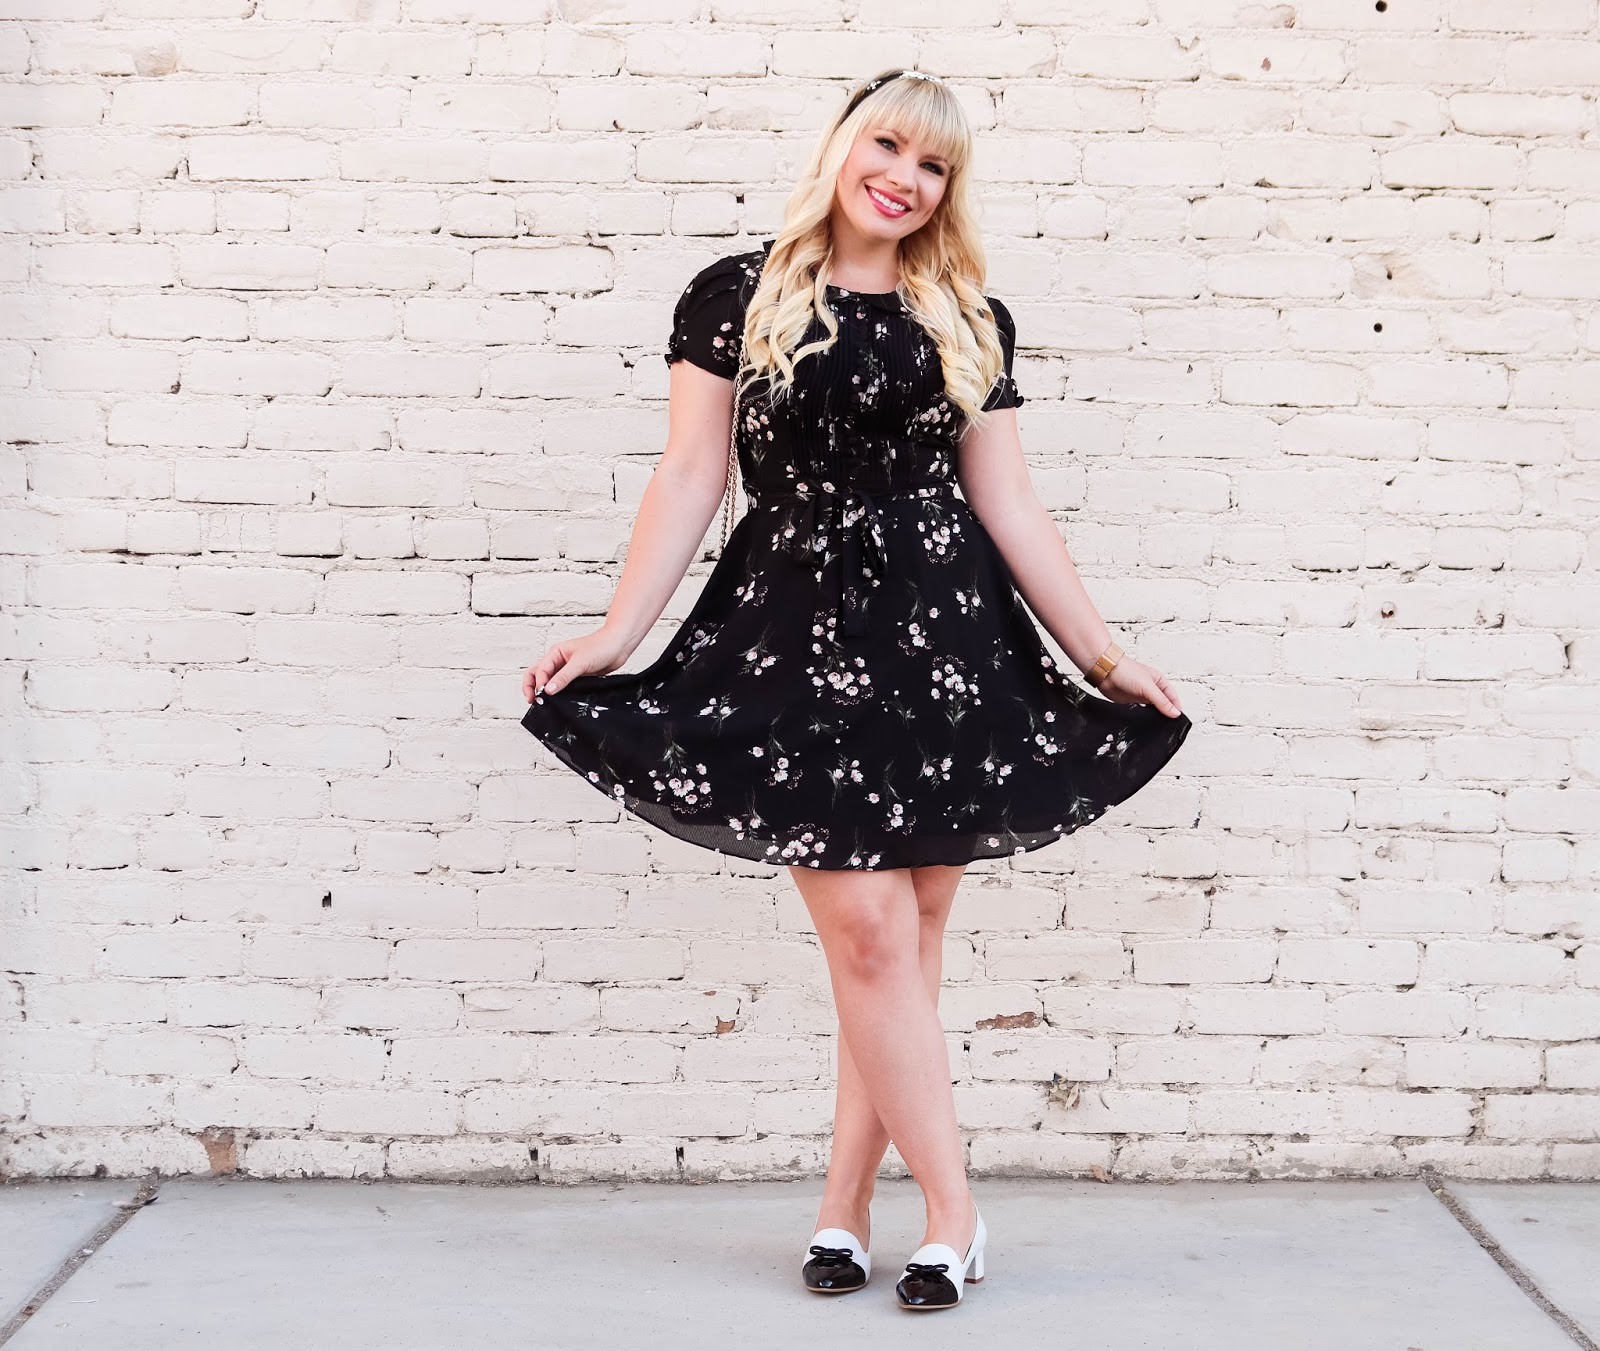 Chicwish Review by popular California style blogger Lizzie in Lace